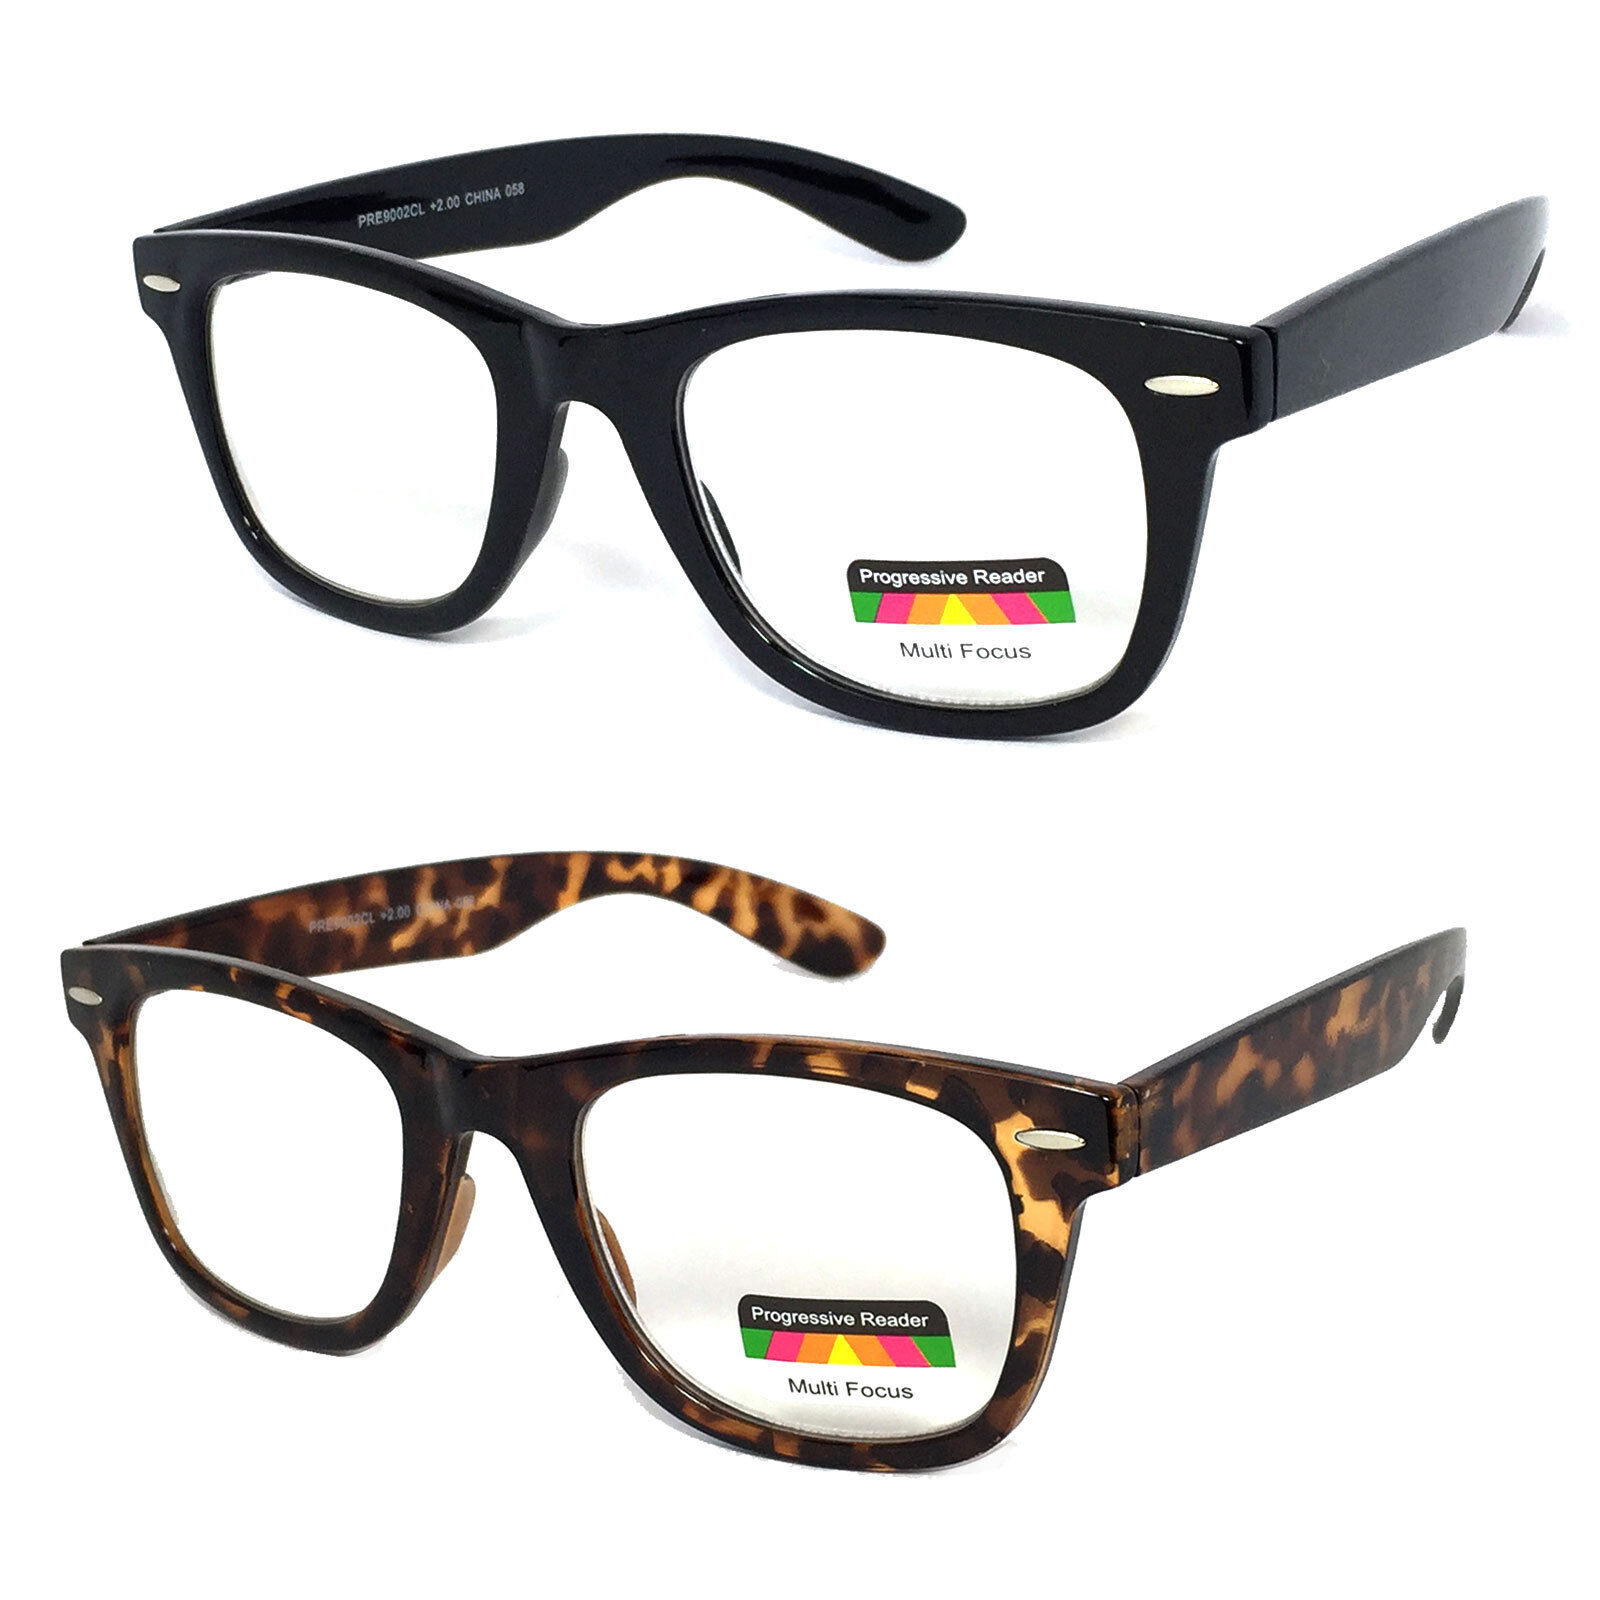 8b38094d4d Details about Square Frame Multi Focus Progressive Reading Glasses 3  Strengths in 1 Reader